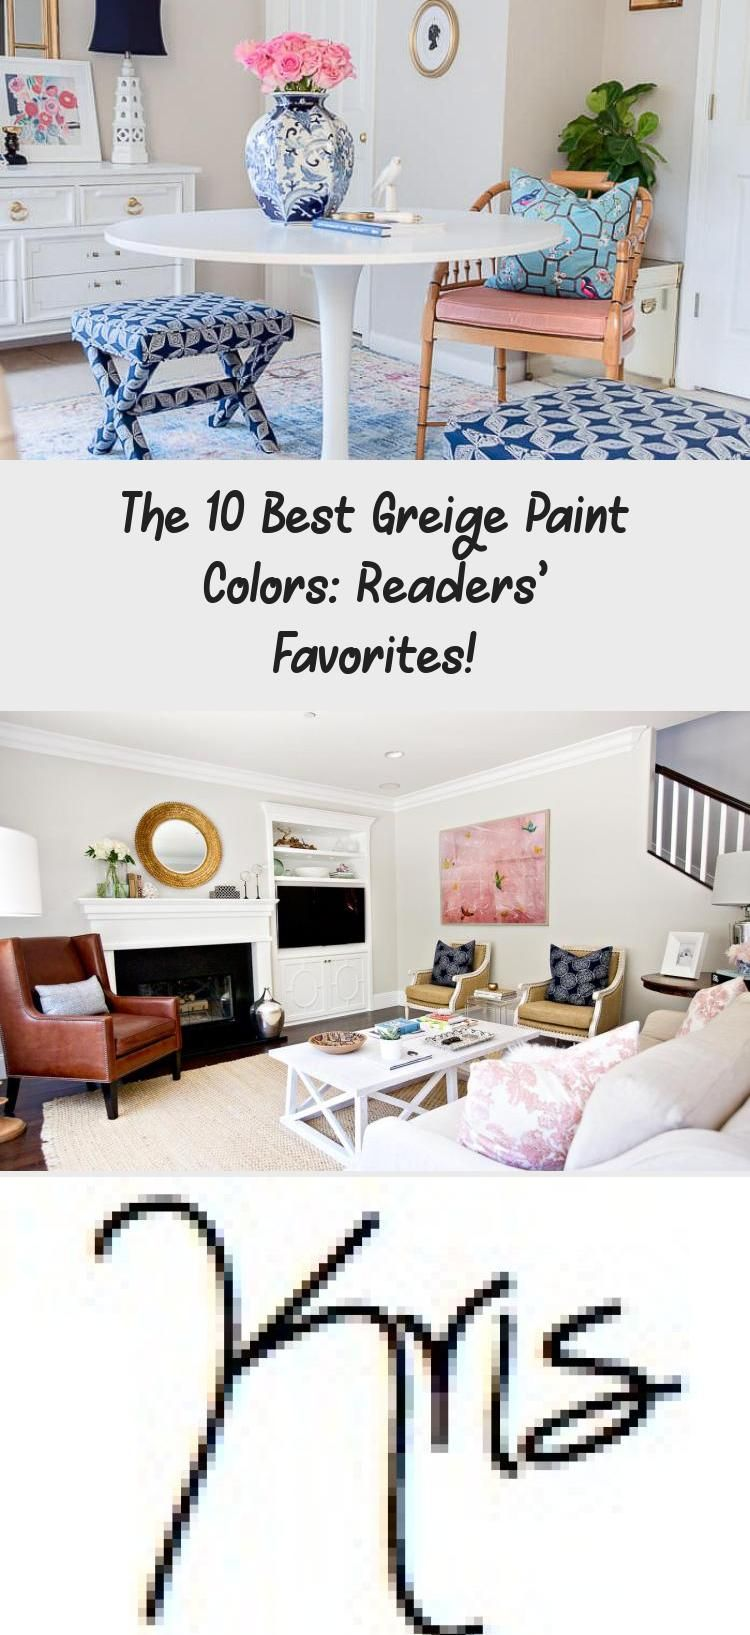 the 10 best greige paint colors readers favorites 2020 on 10 most popular paint colors id=56456